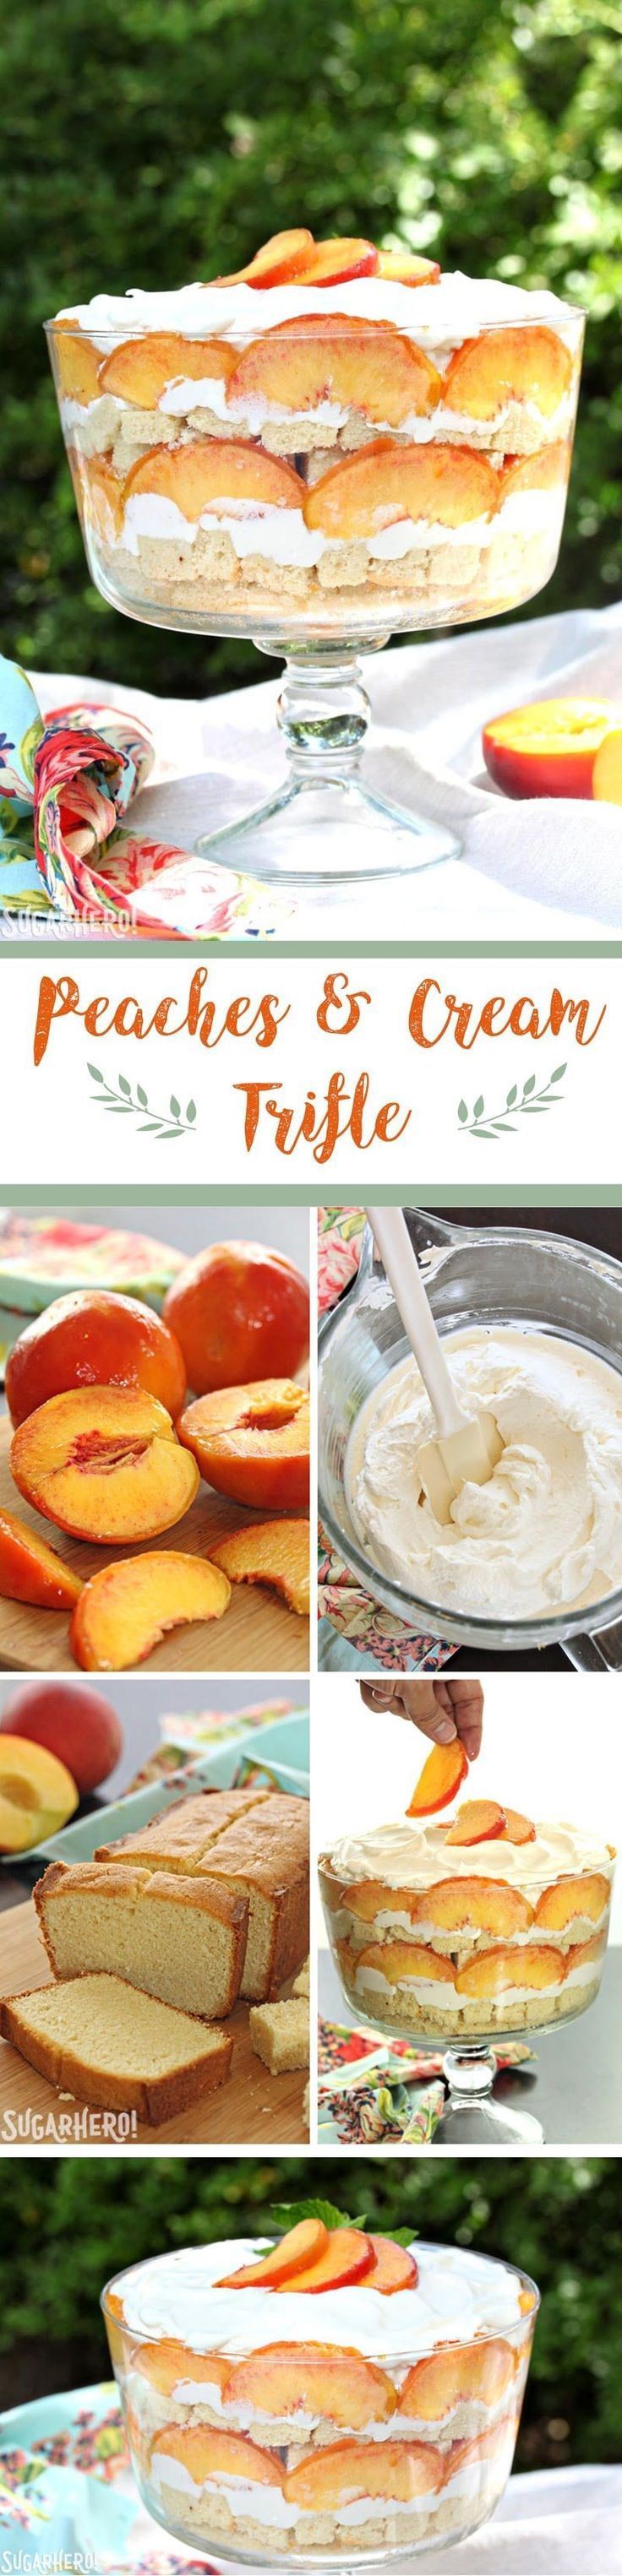 Peaches and Cream Trifle - an easy summertime dessert that's bursting with flavor! You'll love this combination of pound cake, fresh peaches, and whipped cream | From SugarHero.com